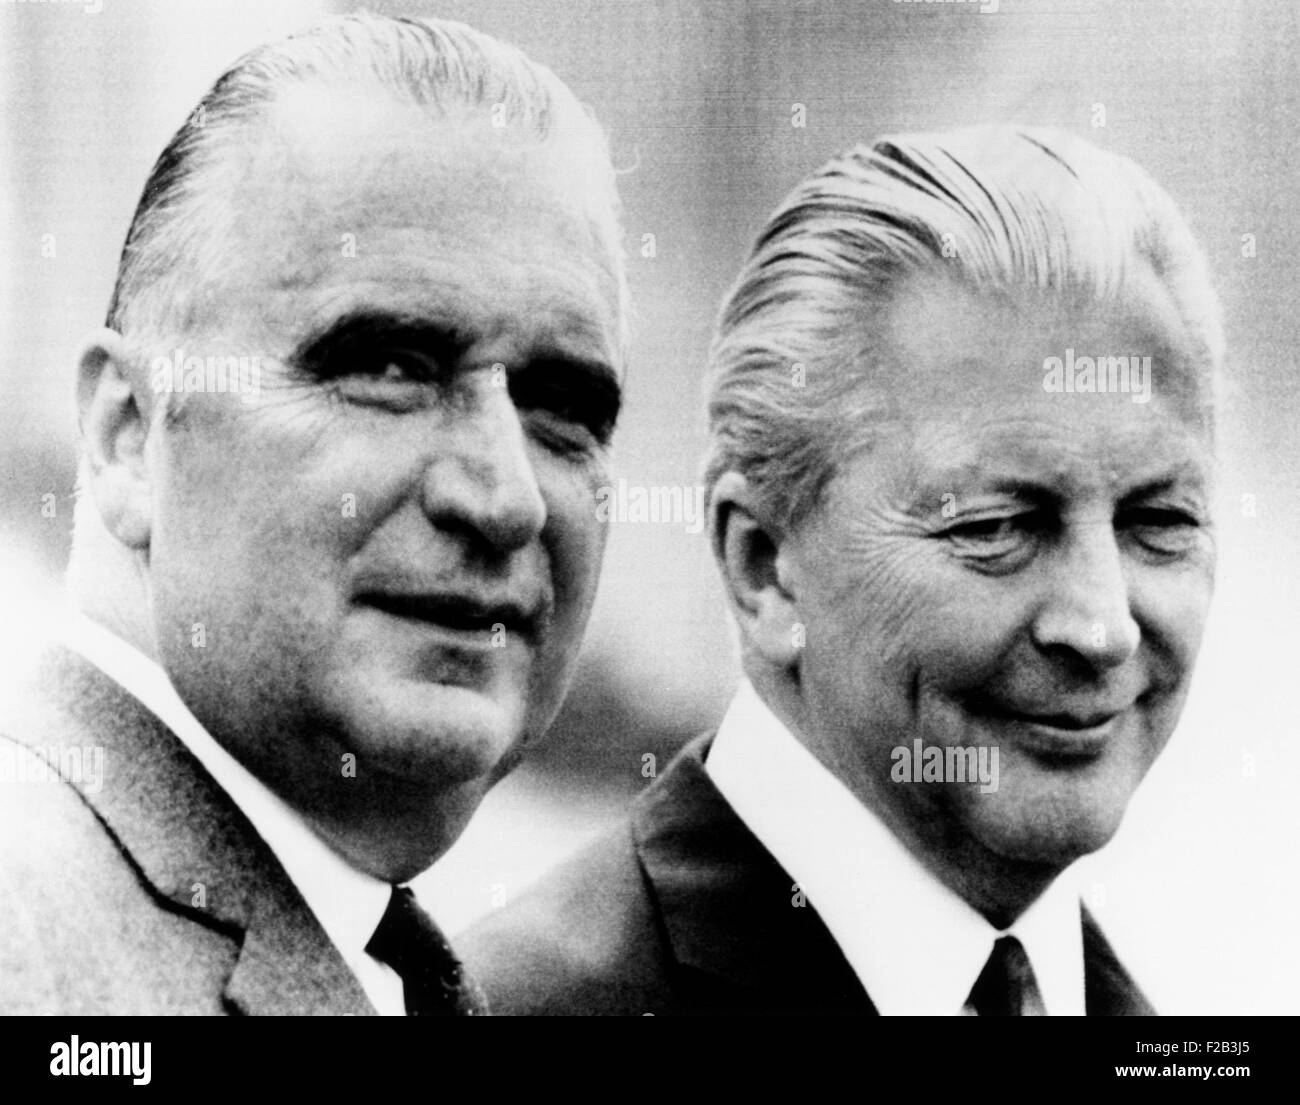 French President Georges Pompidou (left) with West German Chancellor Kurt Kiesinger. It is Pompidou's first official - Stock Image